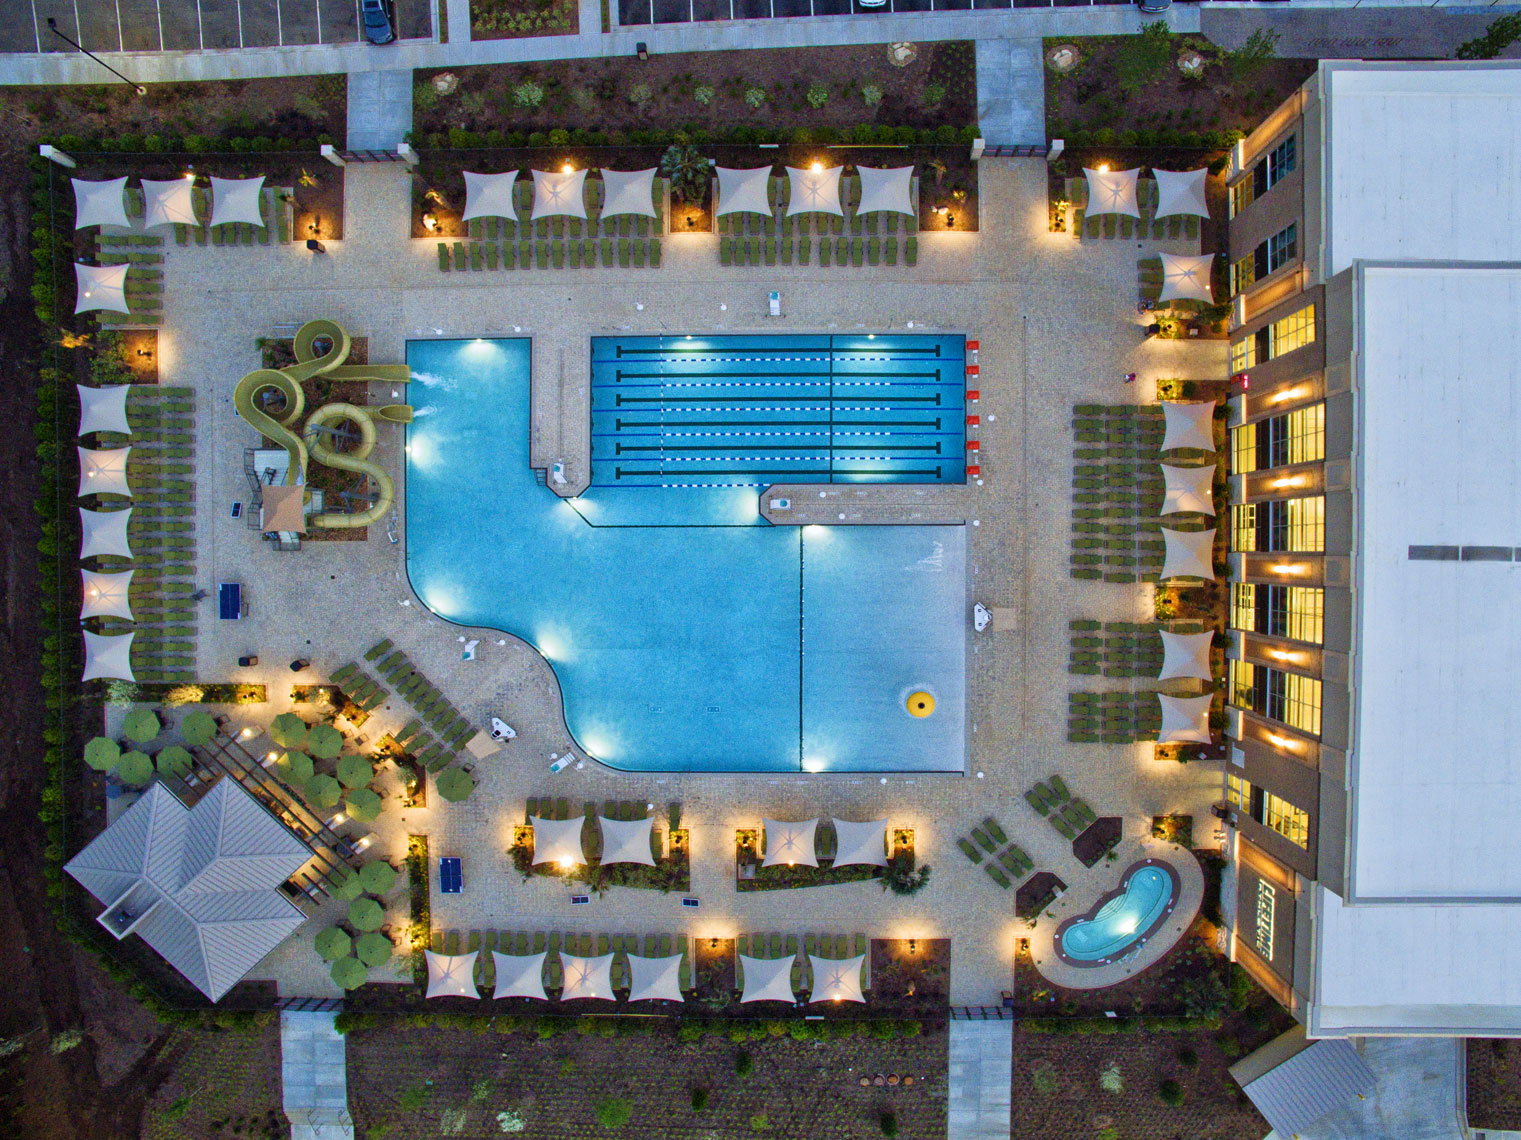 Lifetime Fitness pools/twighlight/arial drone photography